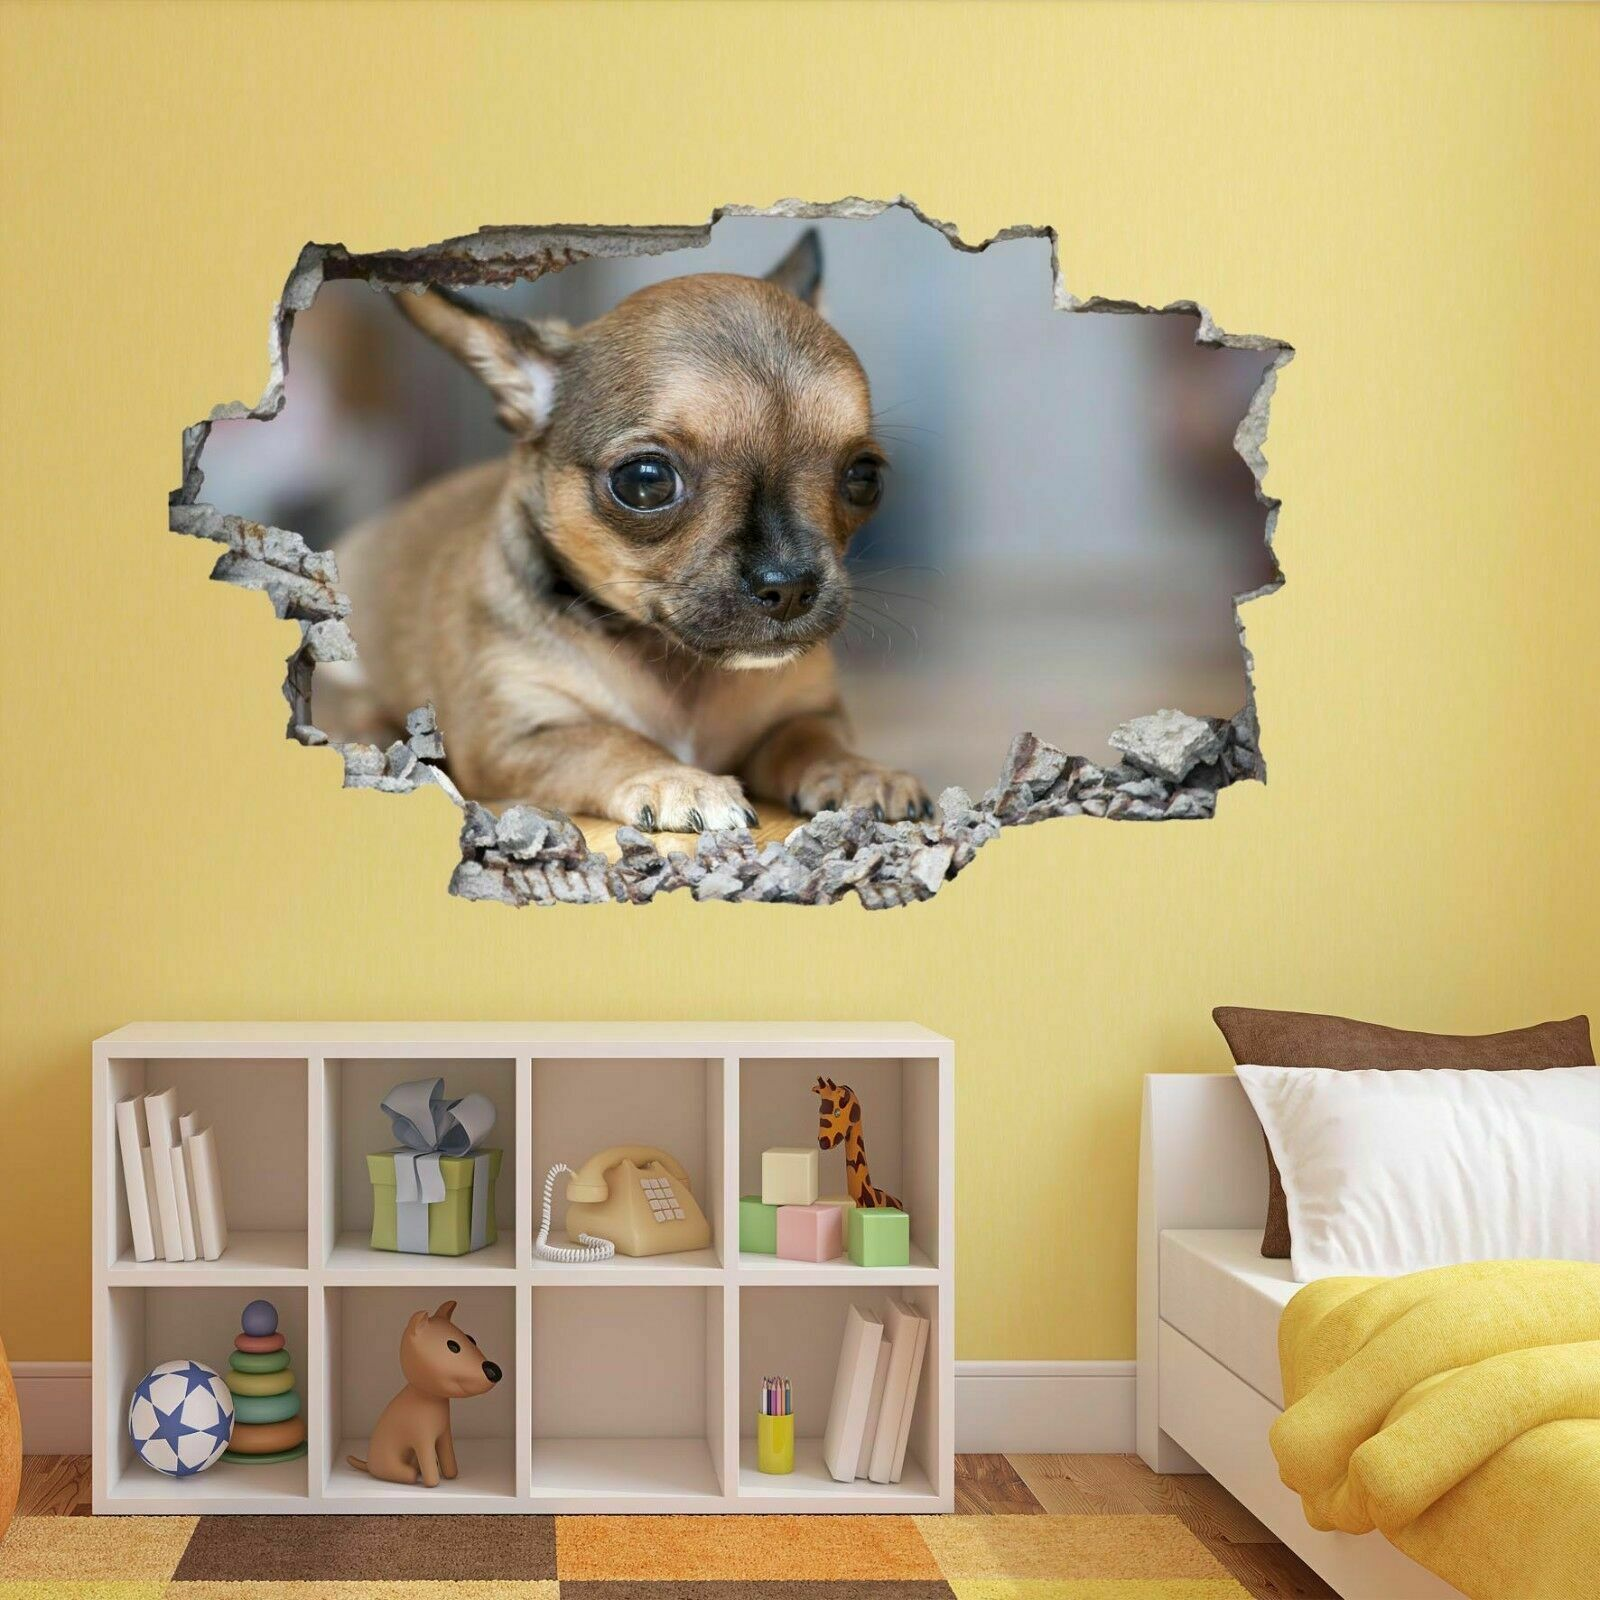 CHIHUAHUA PUPPY DOG Animal 3D Wall Sticker Mural Decal Kids Room ...